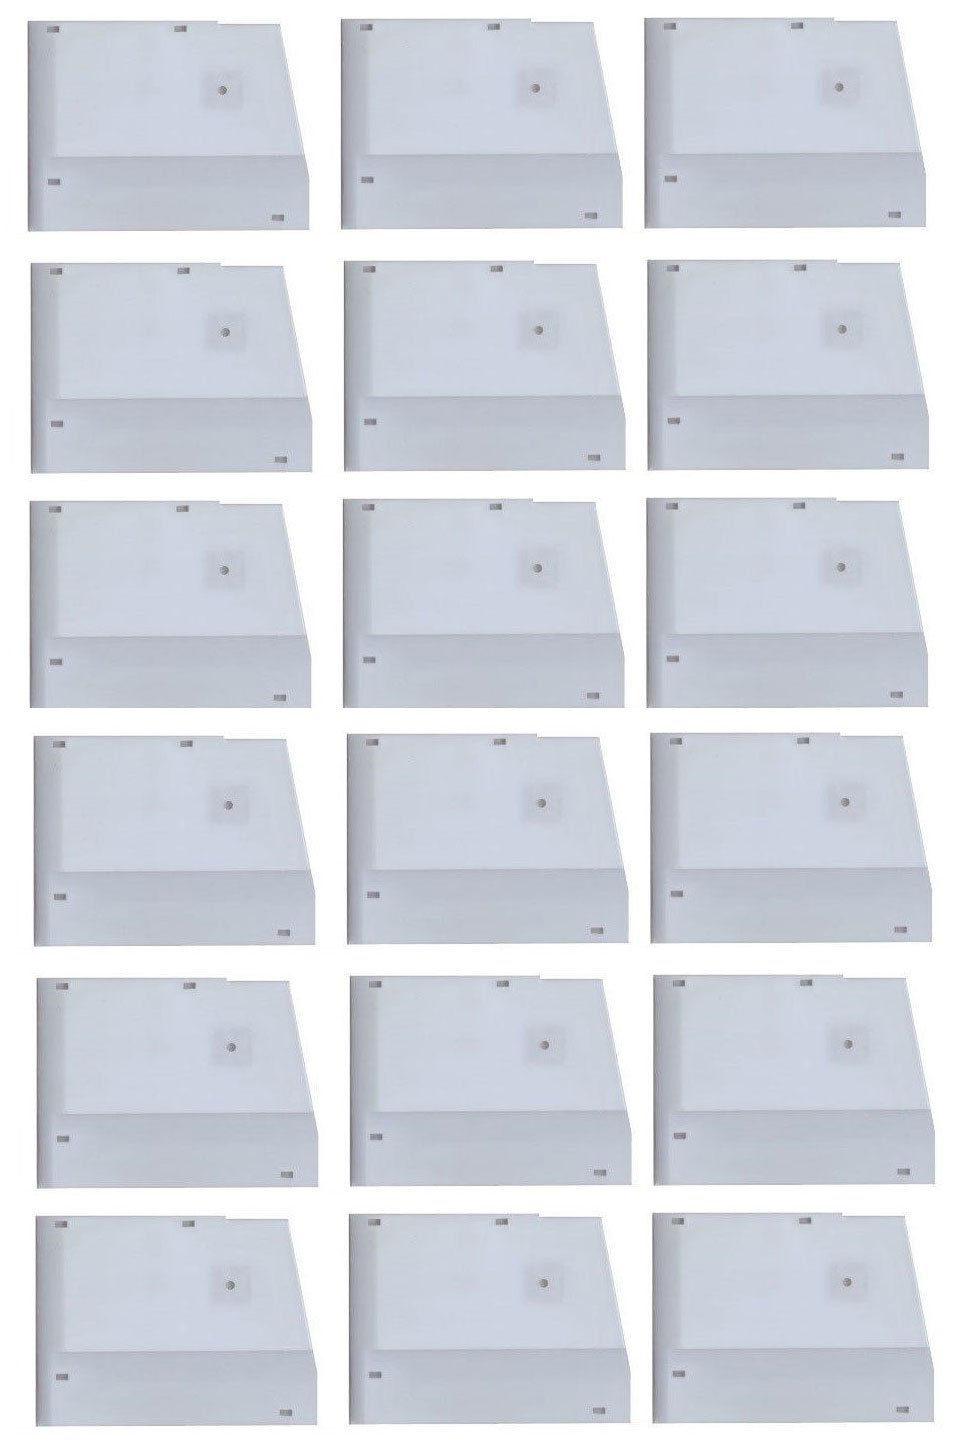 Dixie Narco 12 oz Cans Shims for 5591 Glass Front Vending Machine Qty 18 - W212-1 by Vending-World